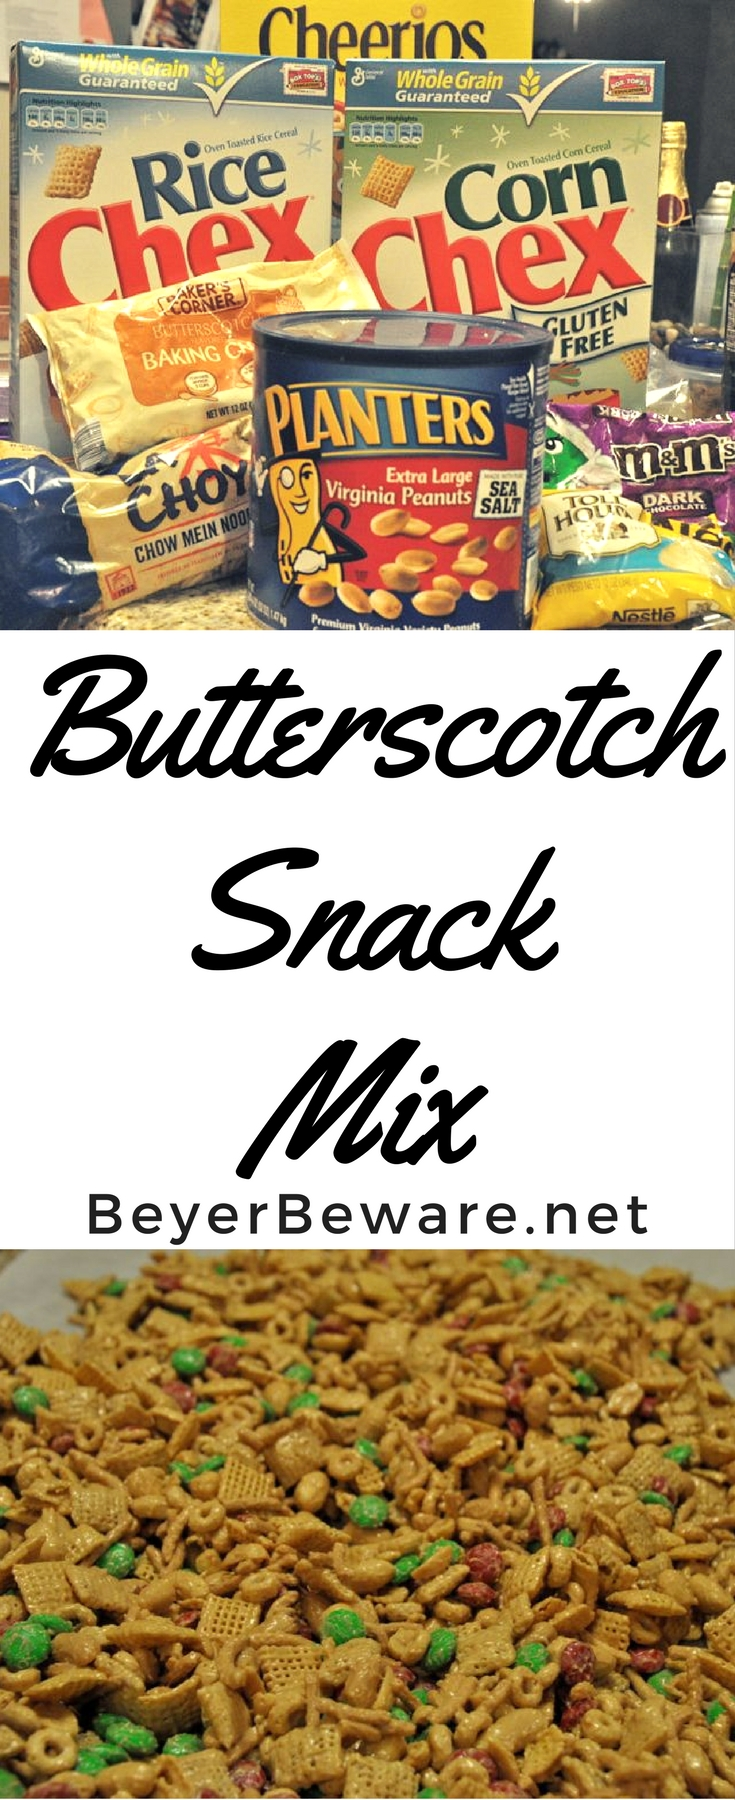 Butterscotch Snack Mix is the sweet and salty combinations of Chex and Cheerio cereal, peanuts, and candy covered in butterscotch and peanut butter coating.